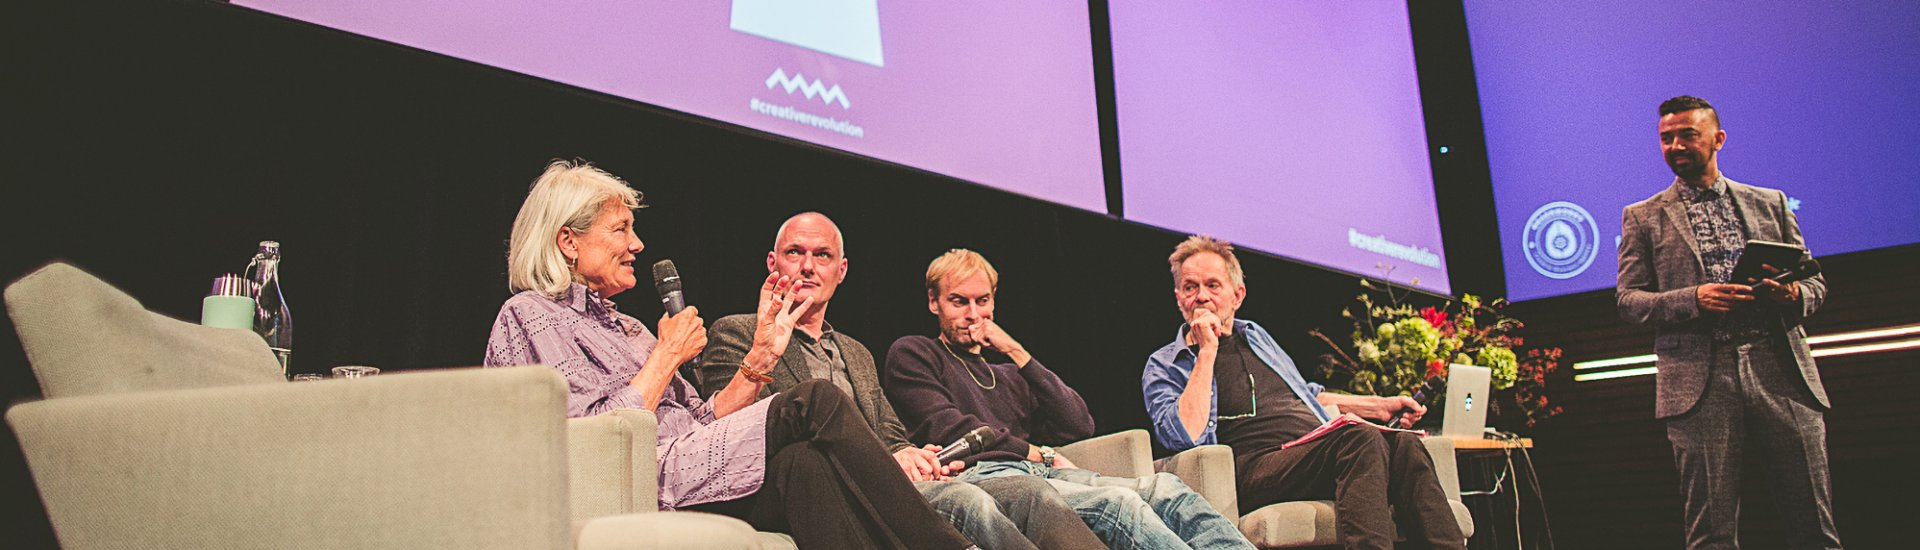 Paneldiscussie tijdens de kickoff van #CreativeRevolution (Foto: 'Brand New Guys')